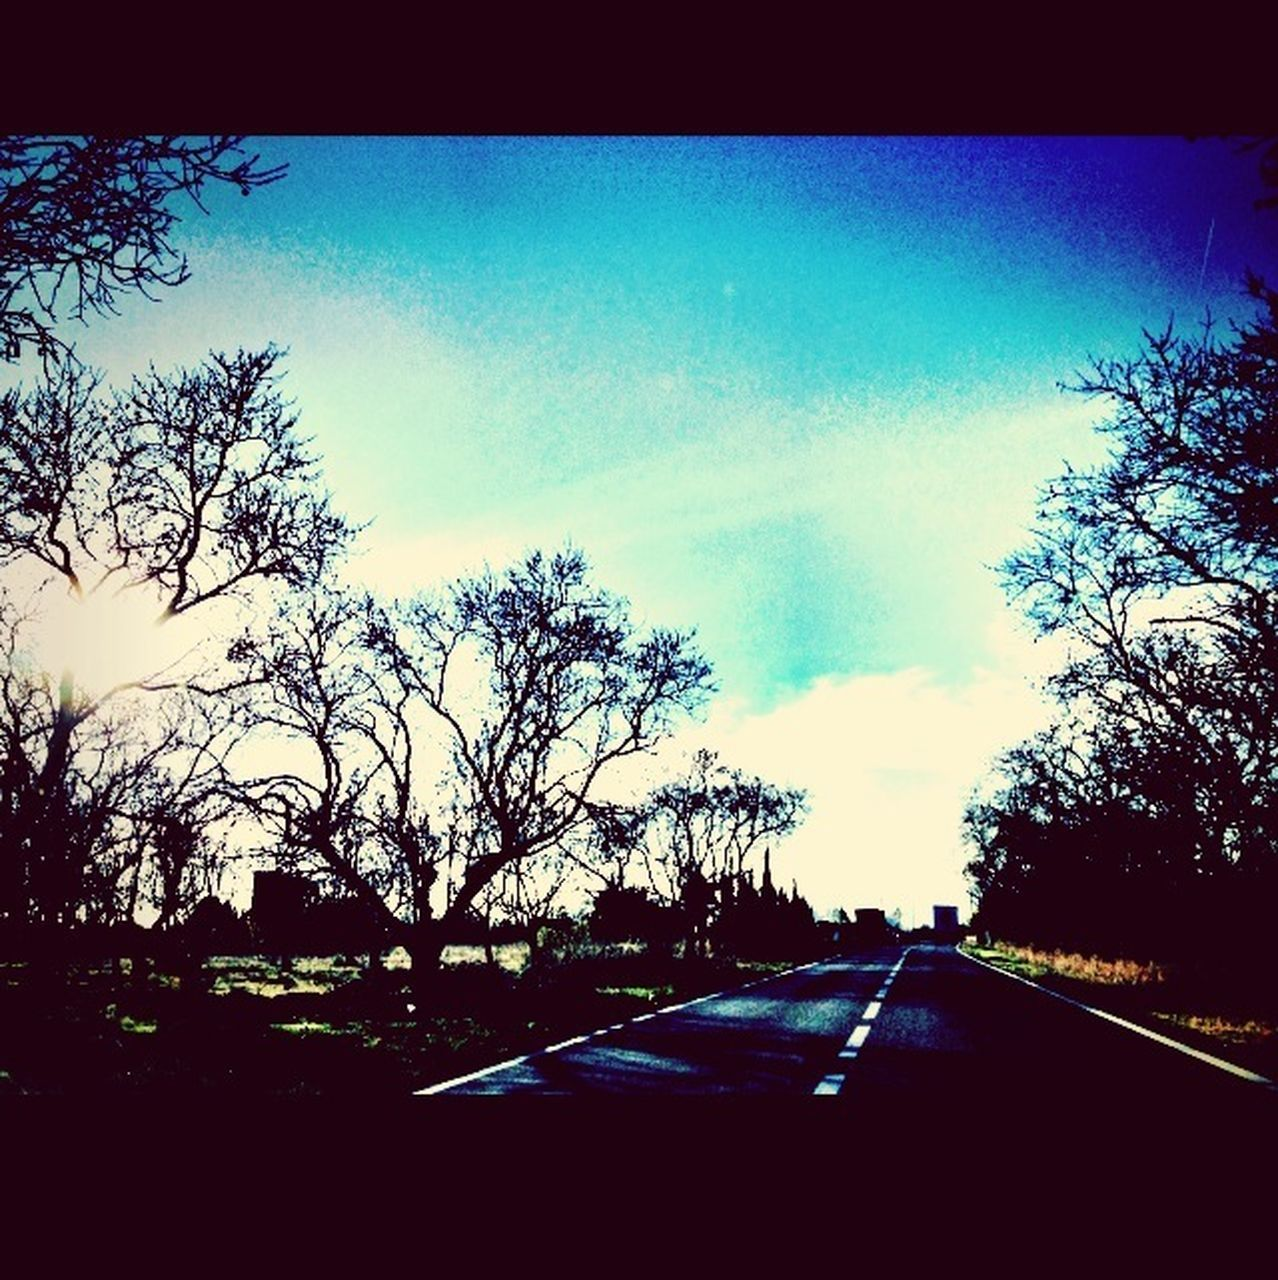 car, road, tree, transportation, windshield, sky, silhouette, the way forward, no people, car interior, nature, day, bare tree, land vehicle, car point of view, outdoors, beauty in nature